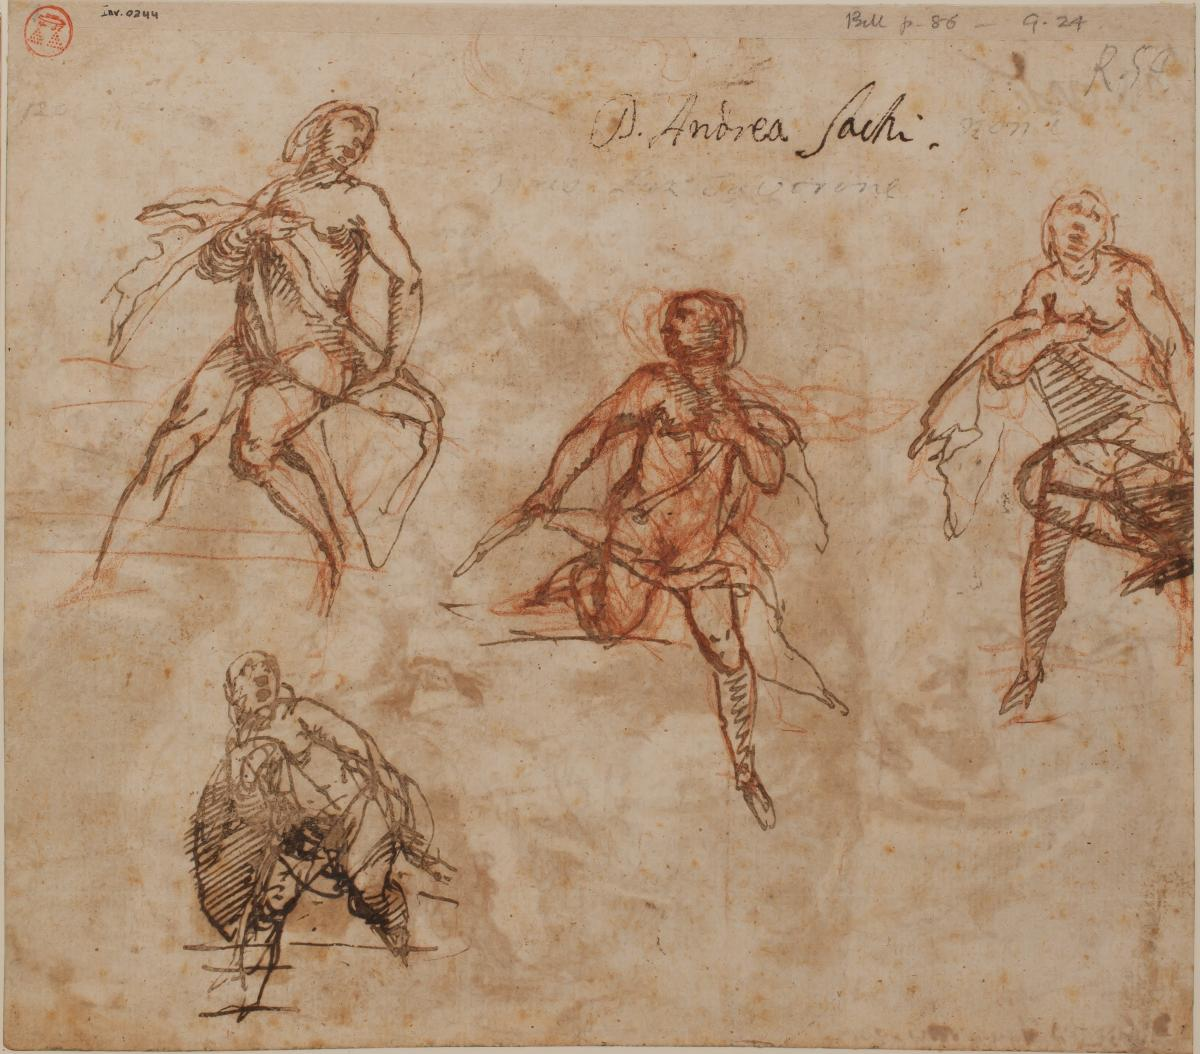 Drawing by Lazzaro Tavarone, 'Four studies for Susanna, or Bathsheba' (JBS 1241)